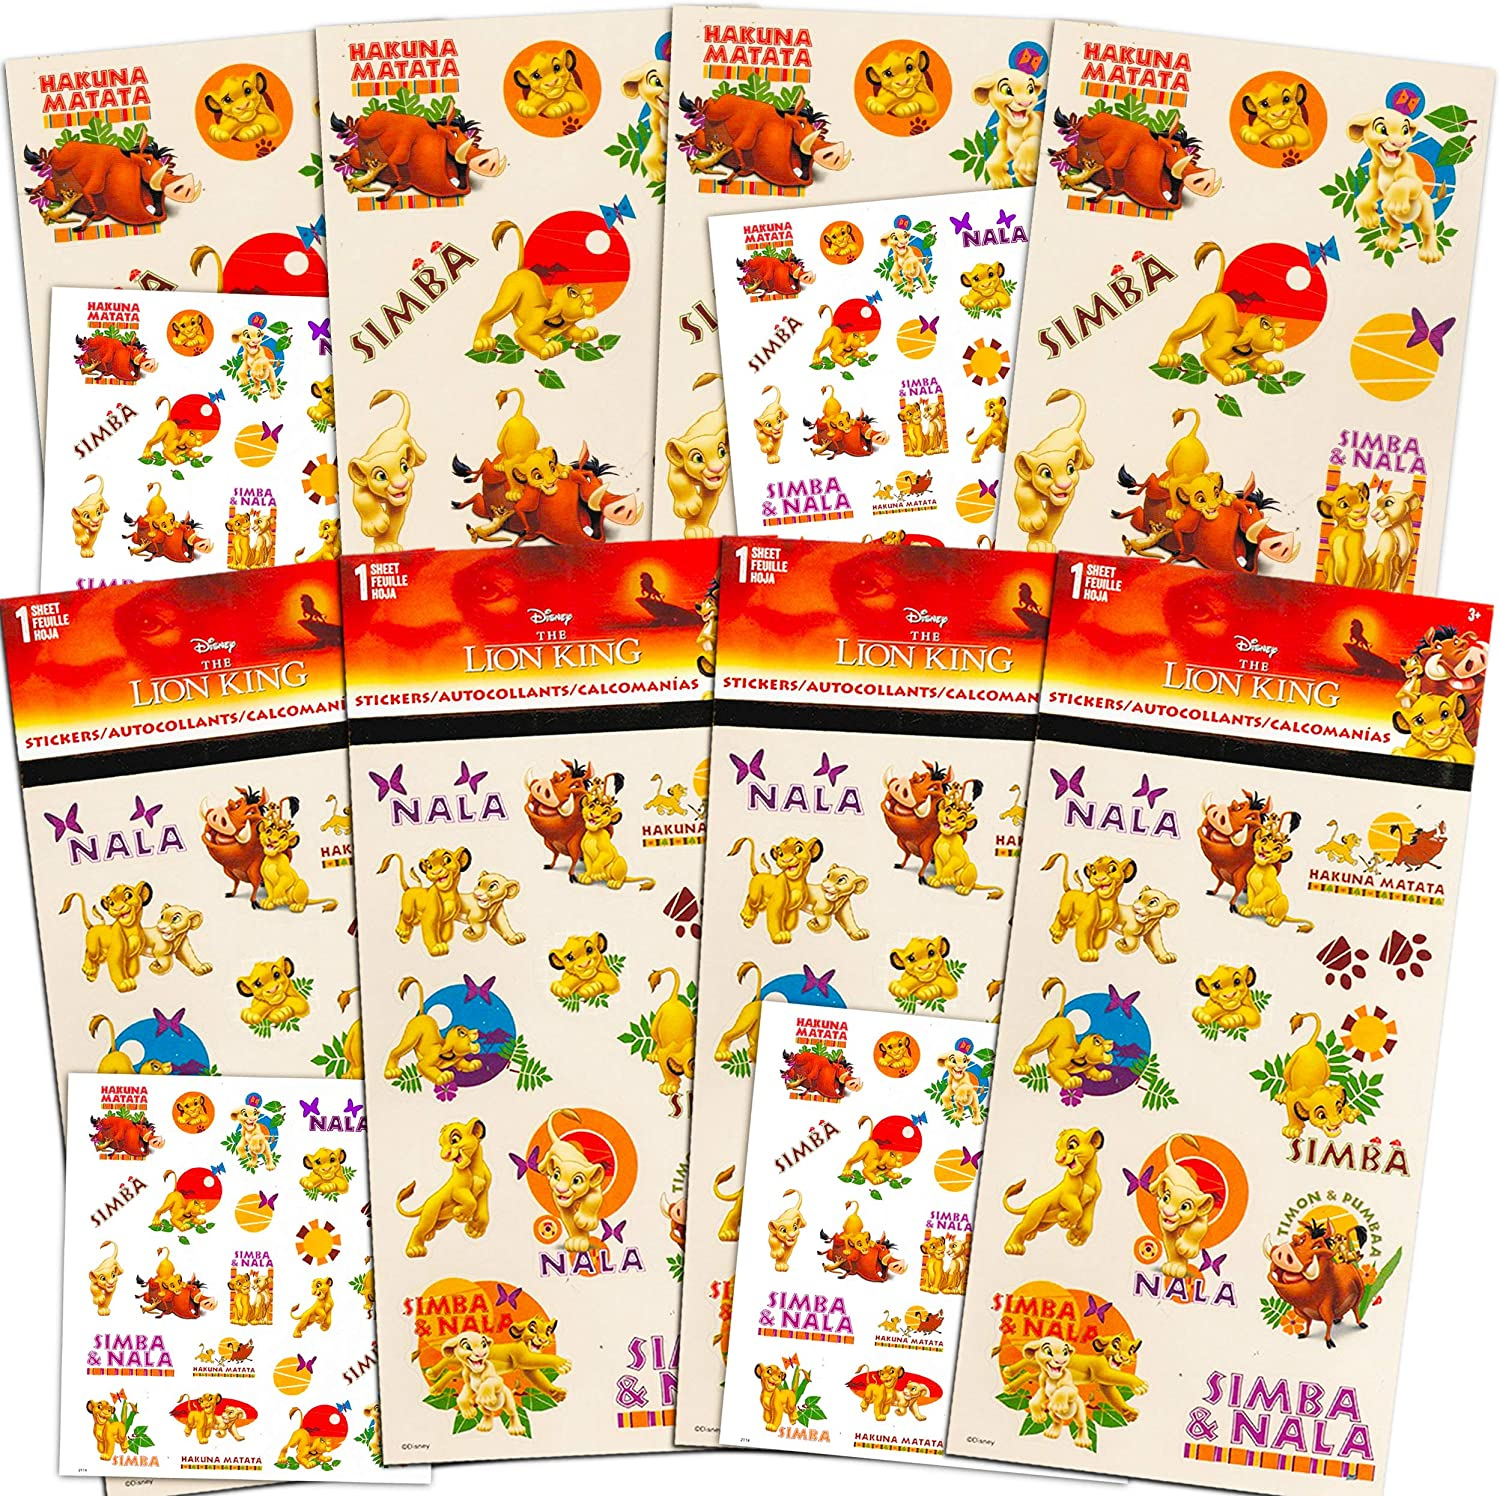 4 Sheets Party Favors Teacher Supply Simba 80 Disney Lion King Stickers